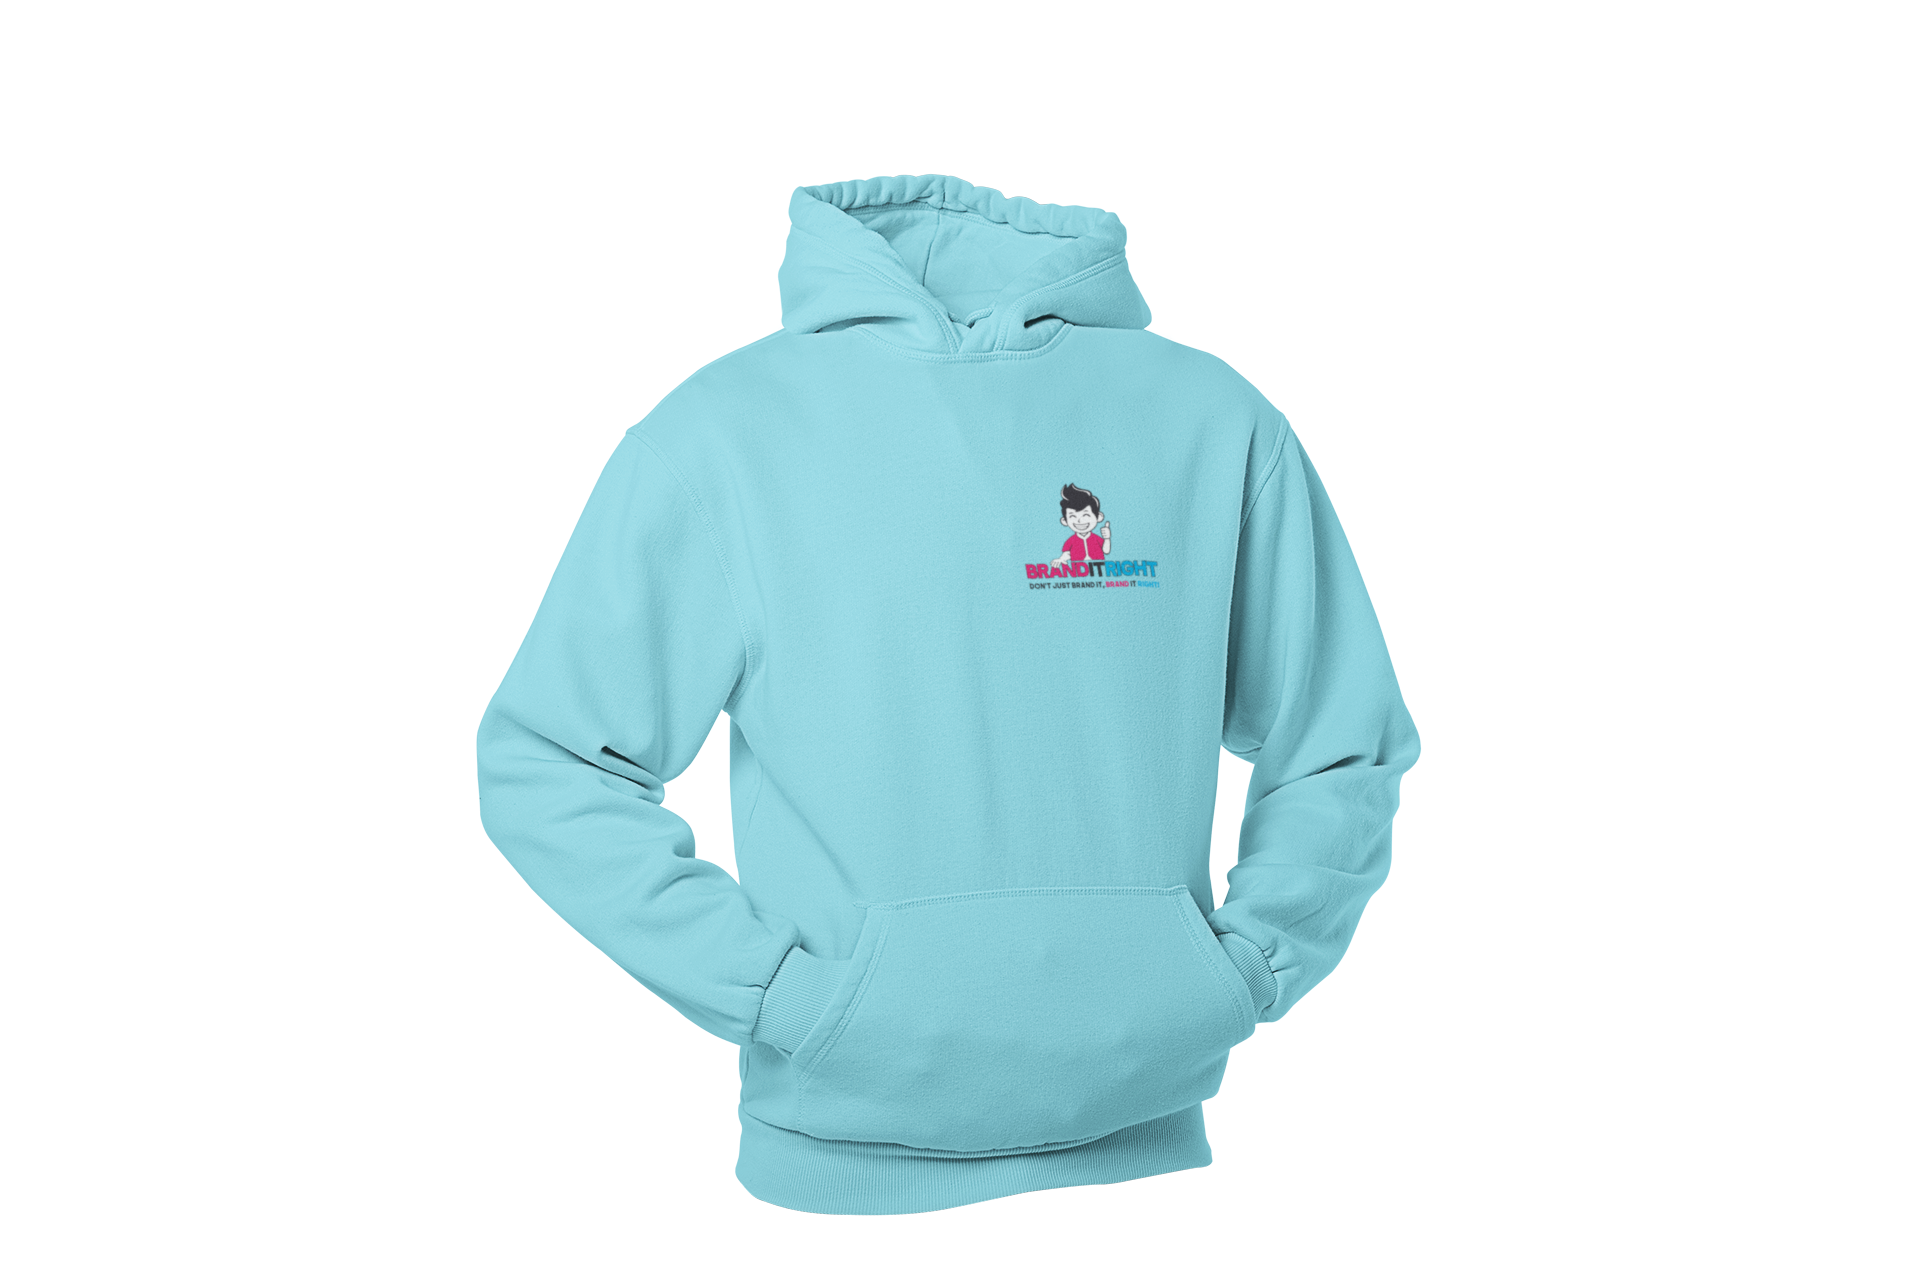 mockup-of-a-ghosted-pullover-hoodie-with-sleeves-on-the-front-pocket-29359.png